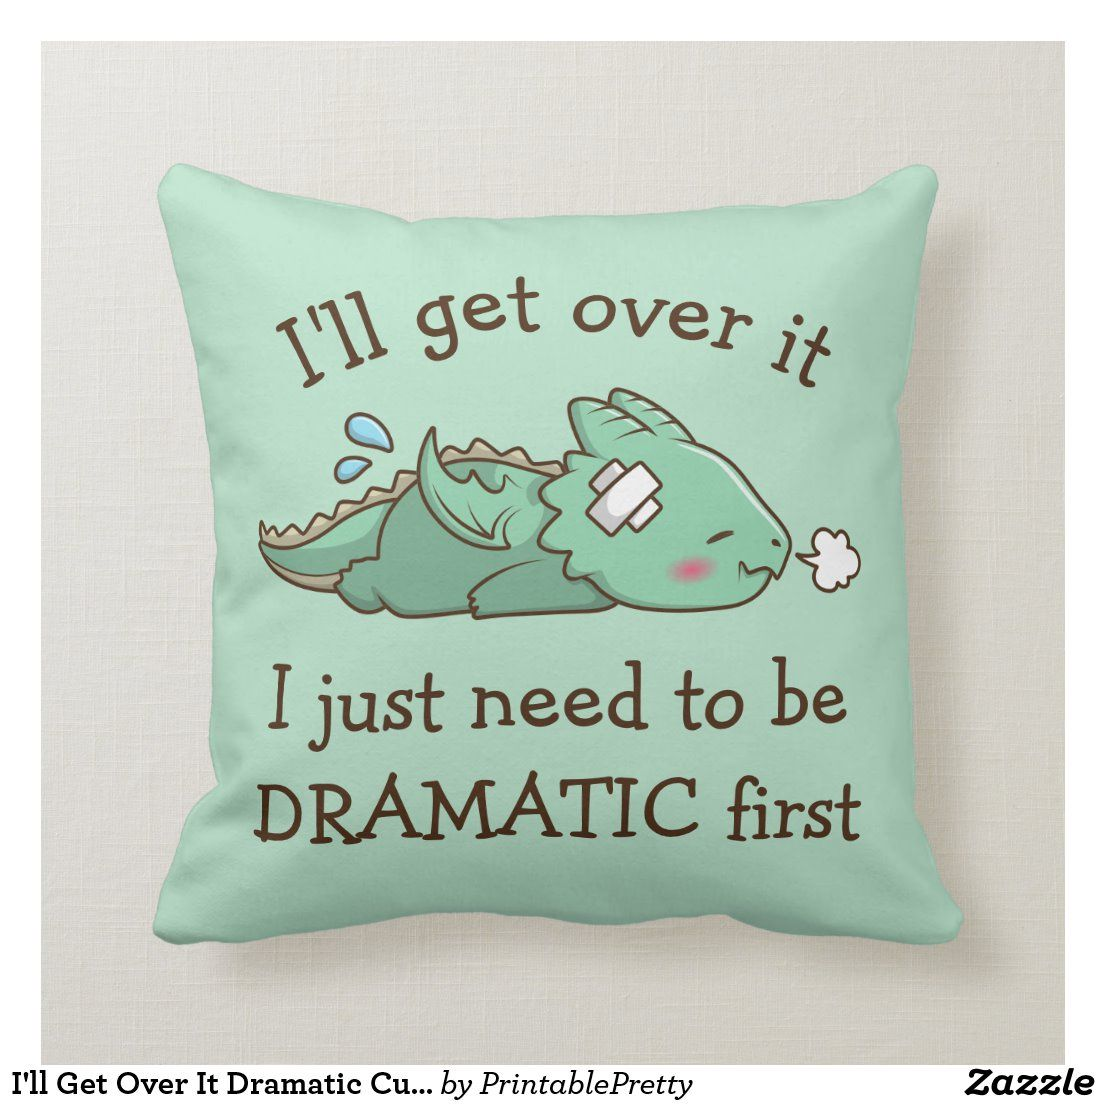 I'll Get Over It Dramatic Cute Funny Baby Dragon Throw Pillow